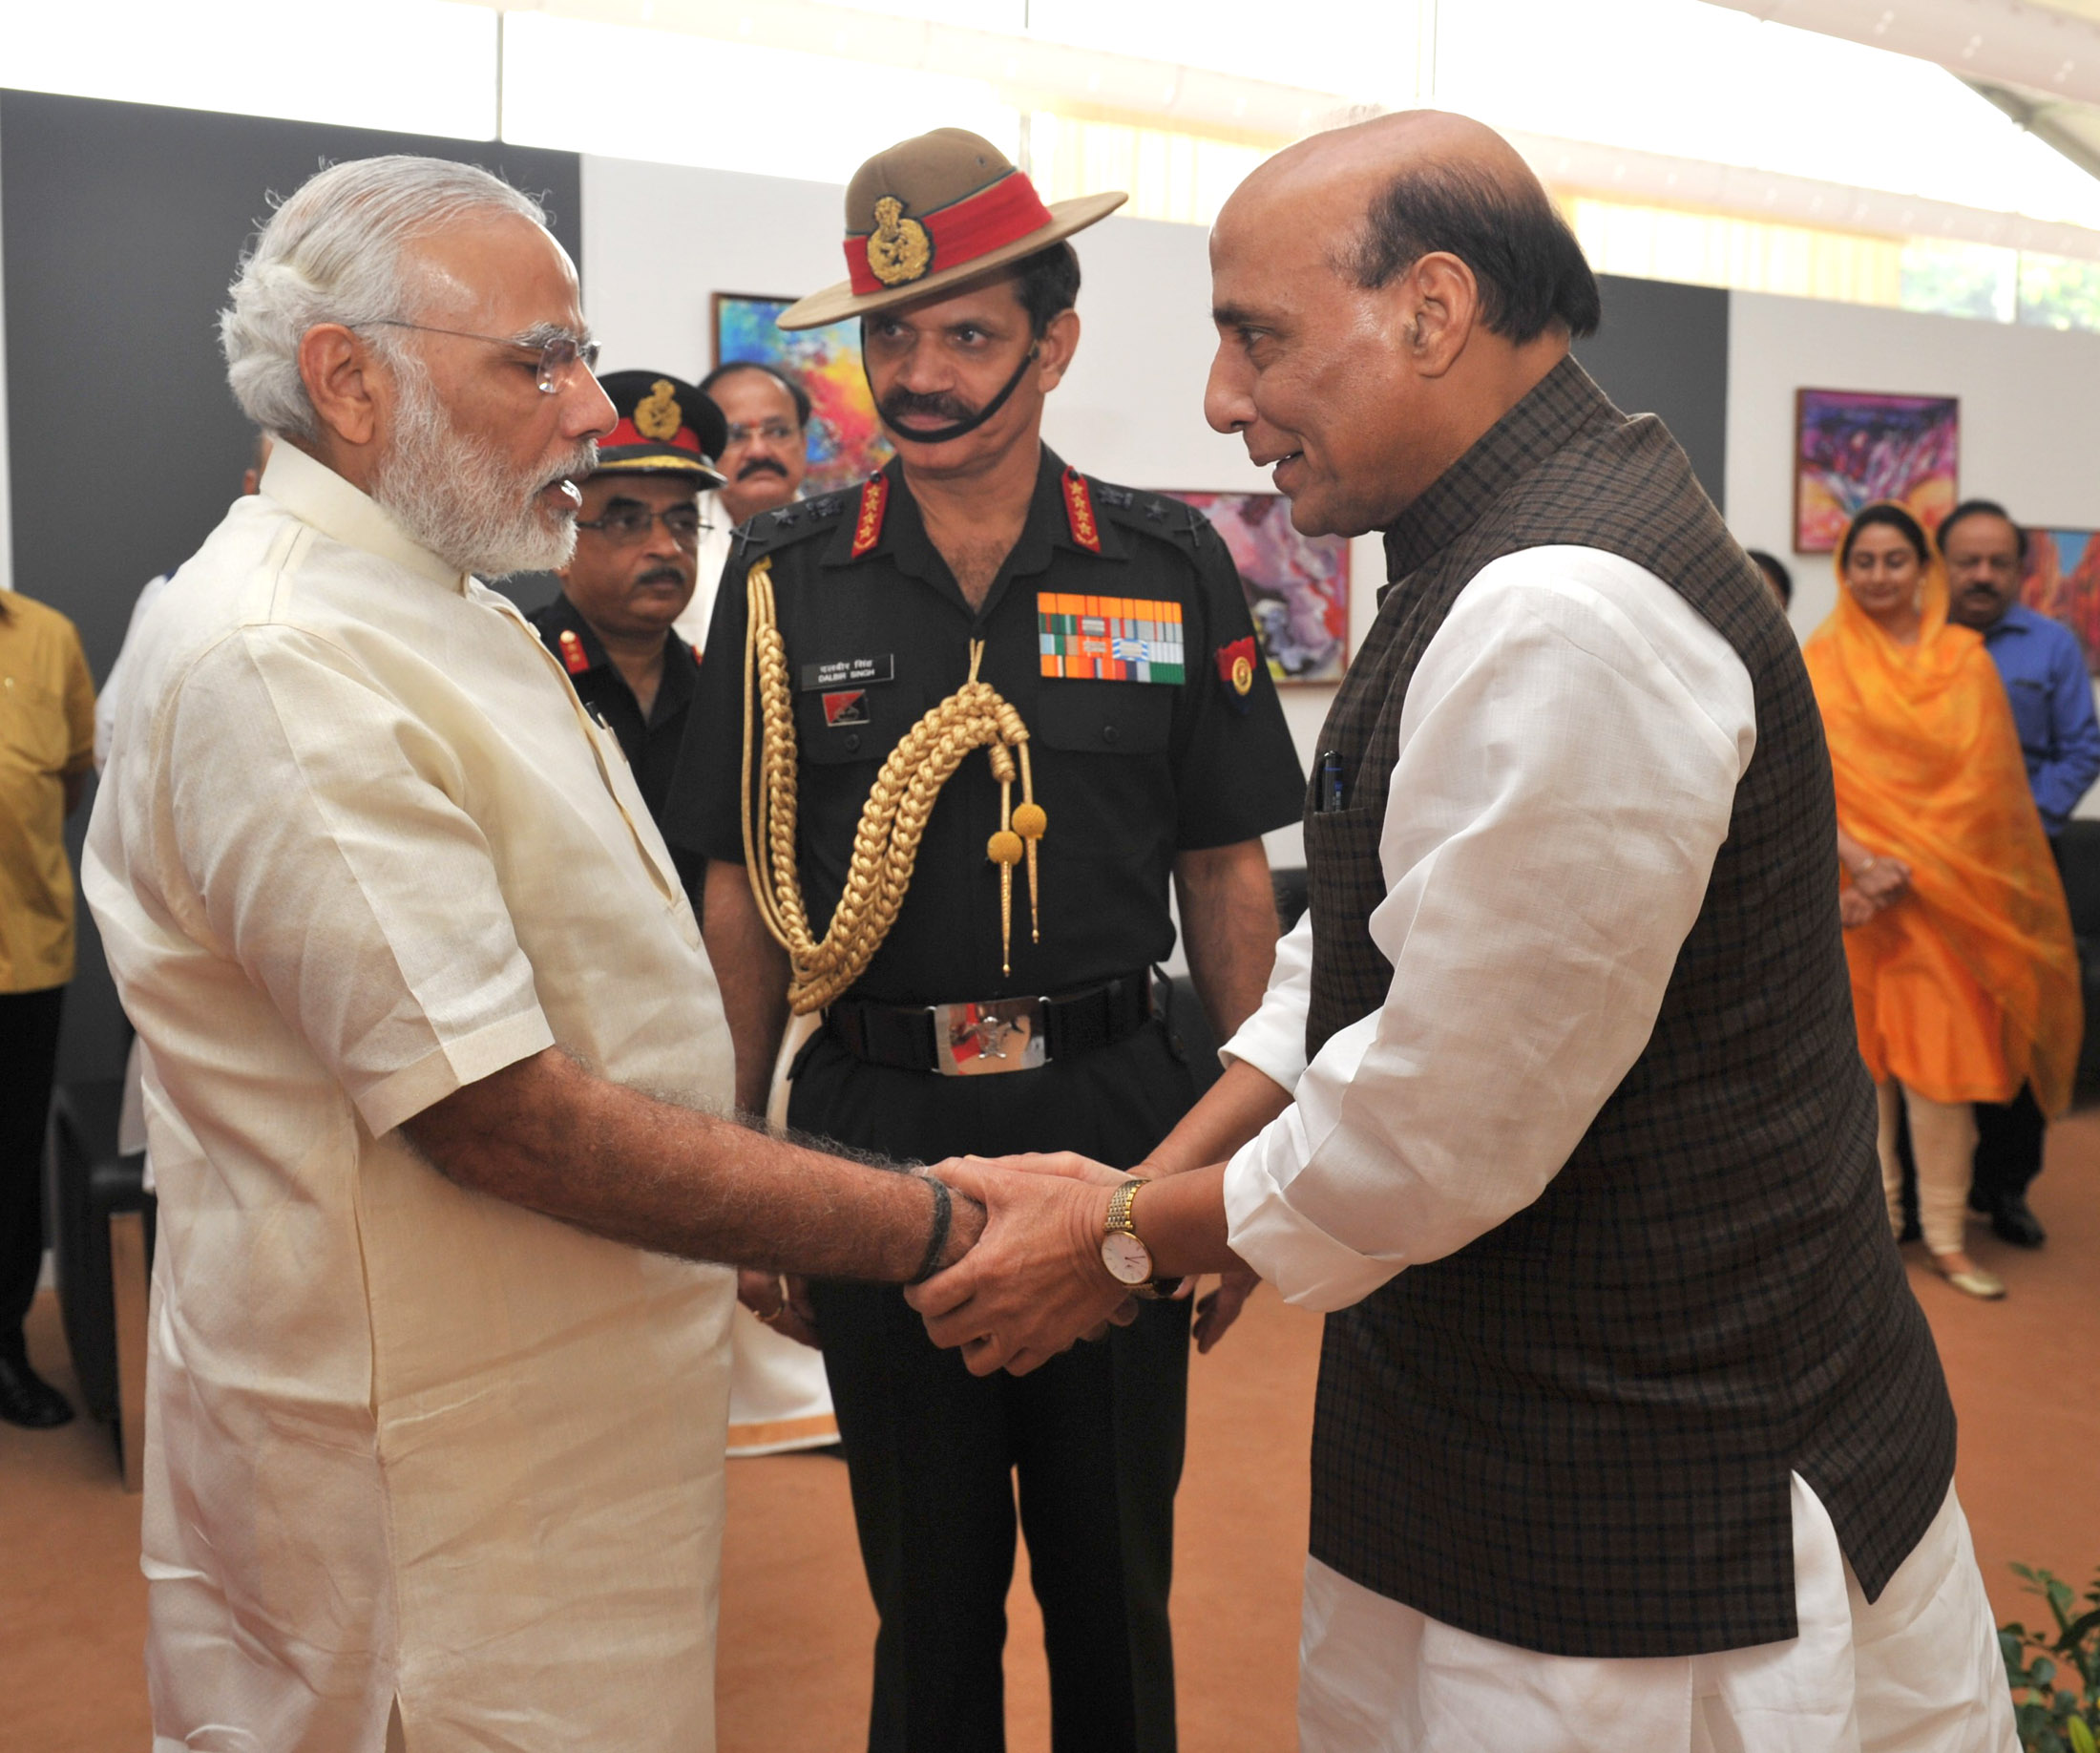 The Prime Minister, Shri Narendra Modi at 'Shauryanjali', a commemorative exhibition on Golden Jubilee of 1965 war, at India Gate, in New Delhi on September 17, 2015. The Union Home Minister, Shri Rajnath Singh and the Chief of Army Staff, General Dalbir Singh are also seen.